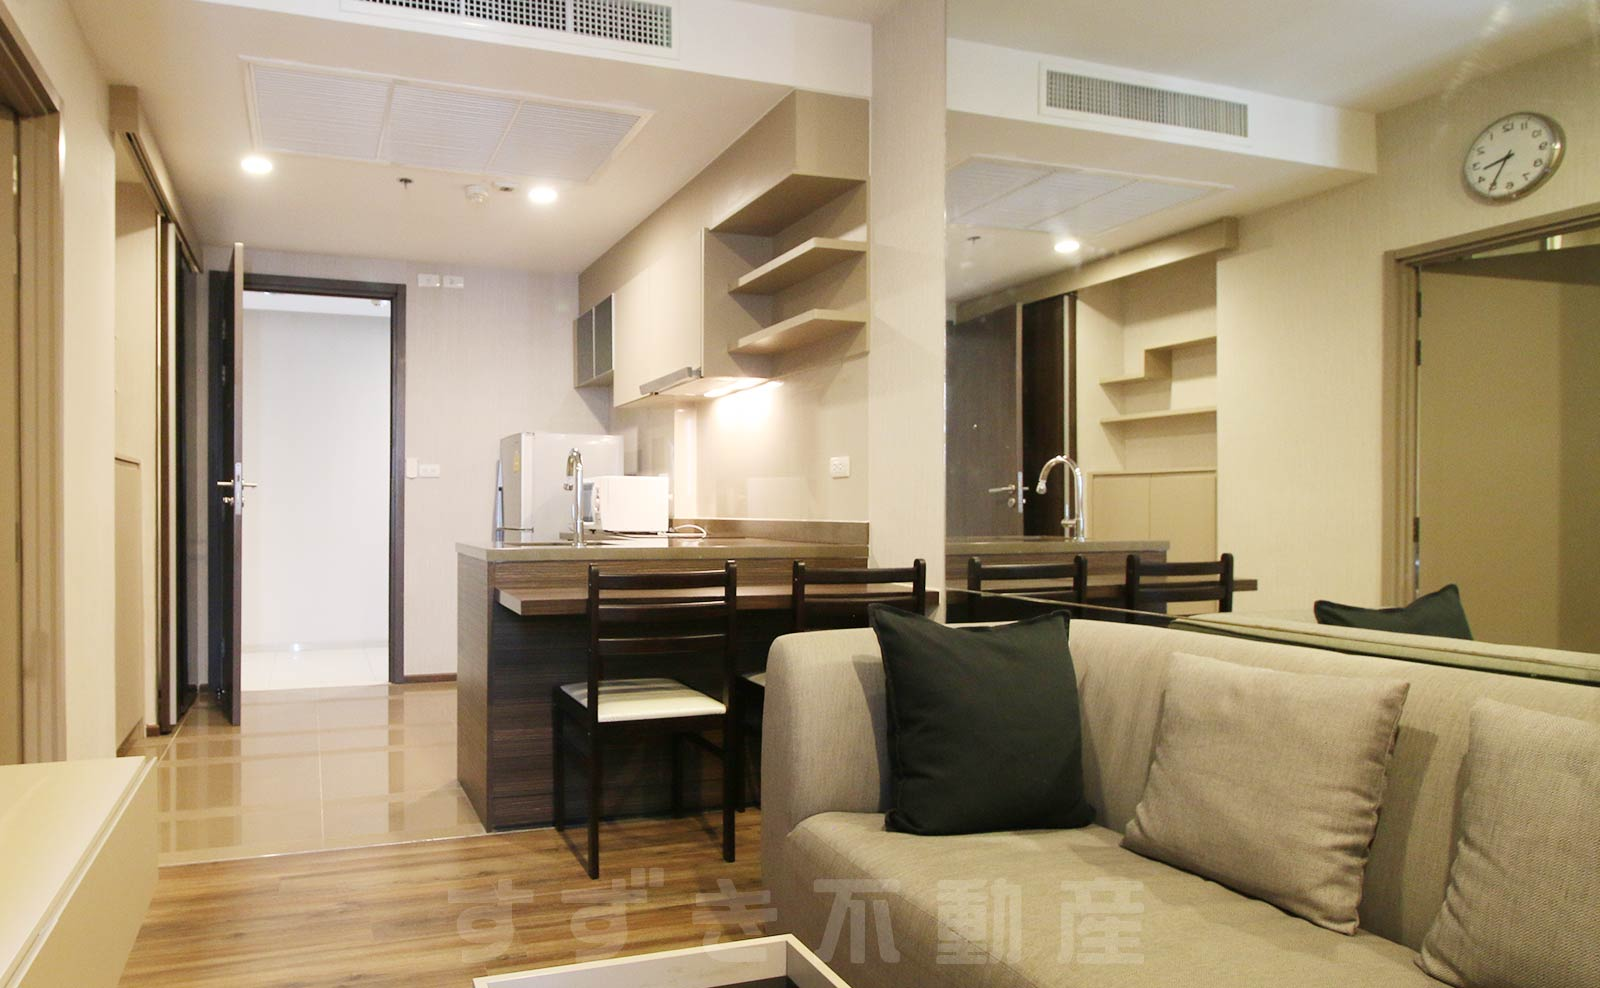 Teal Sathorn-Taksin:1Bed Room Photos No.2